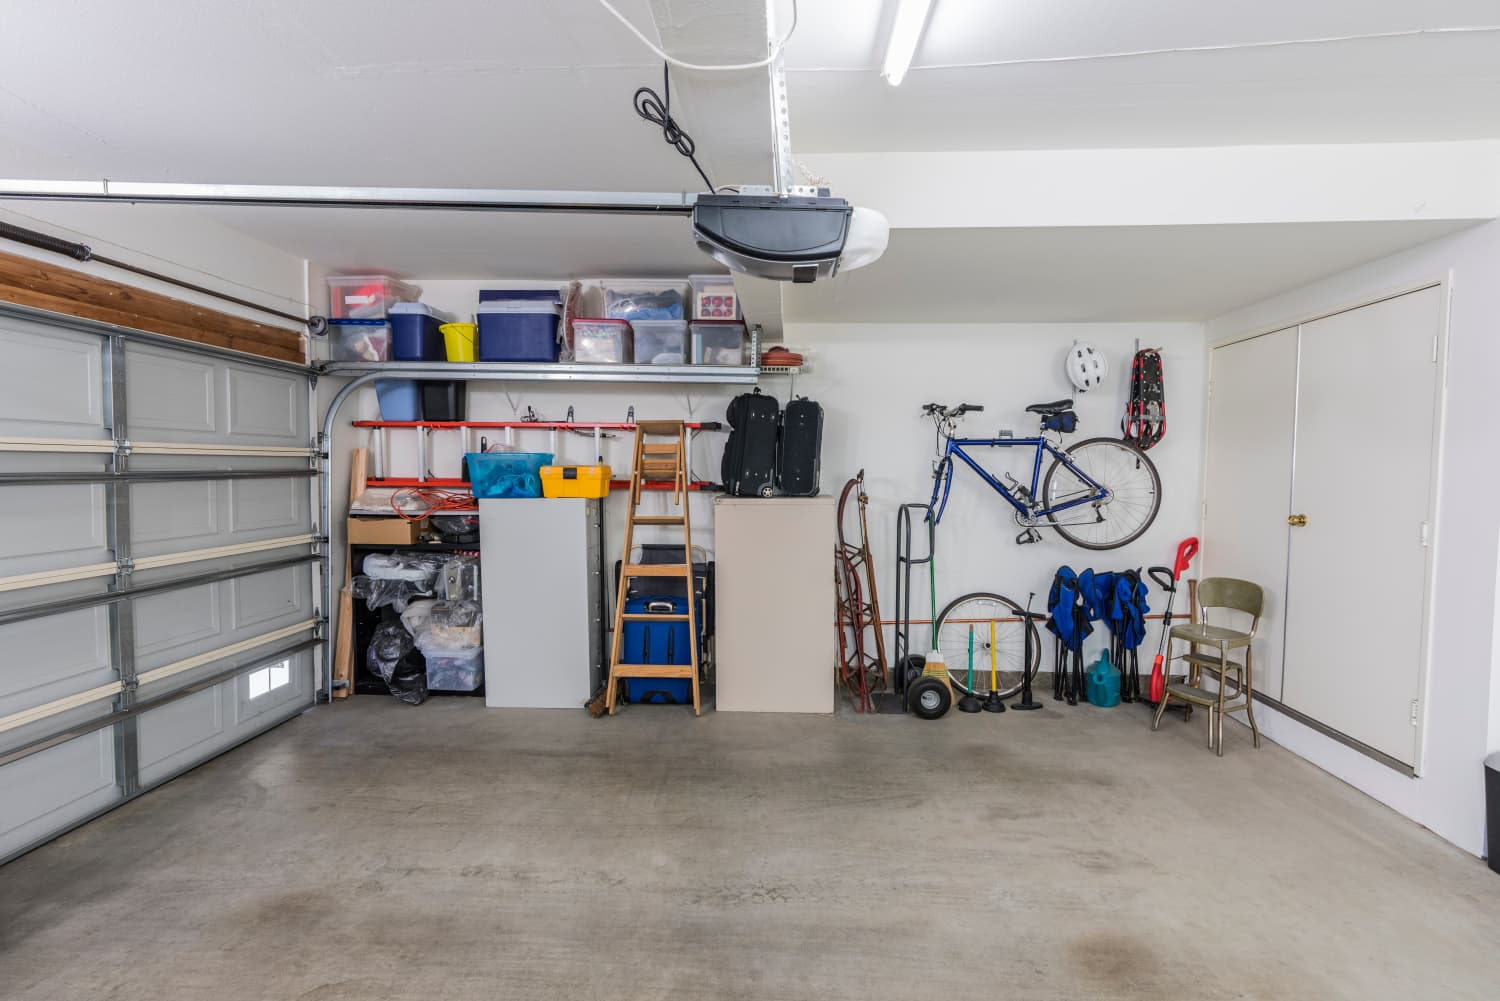 6 Garage Features That Are Always Worth the Extra Money, According to Home Experts